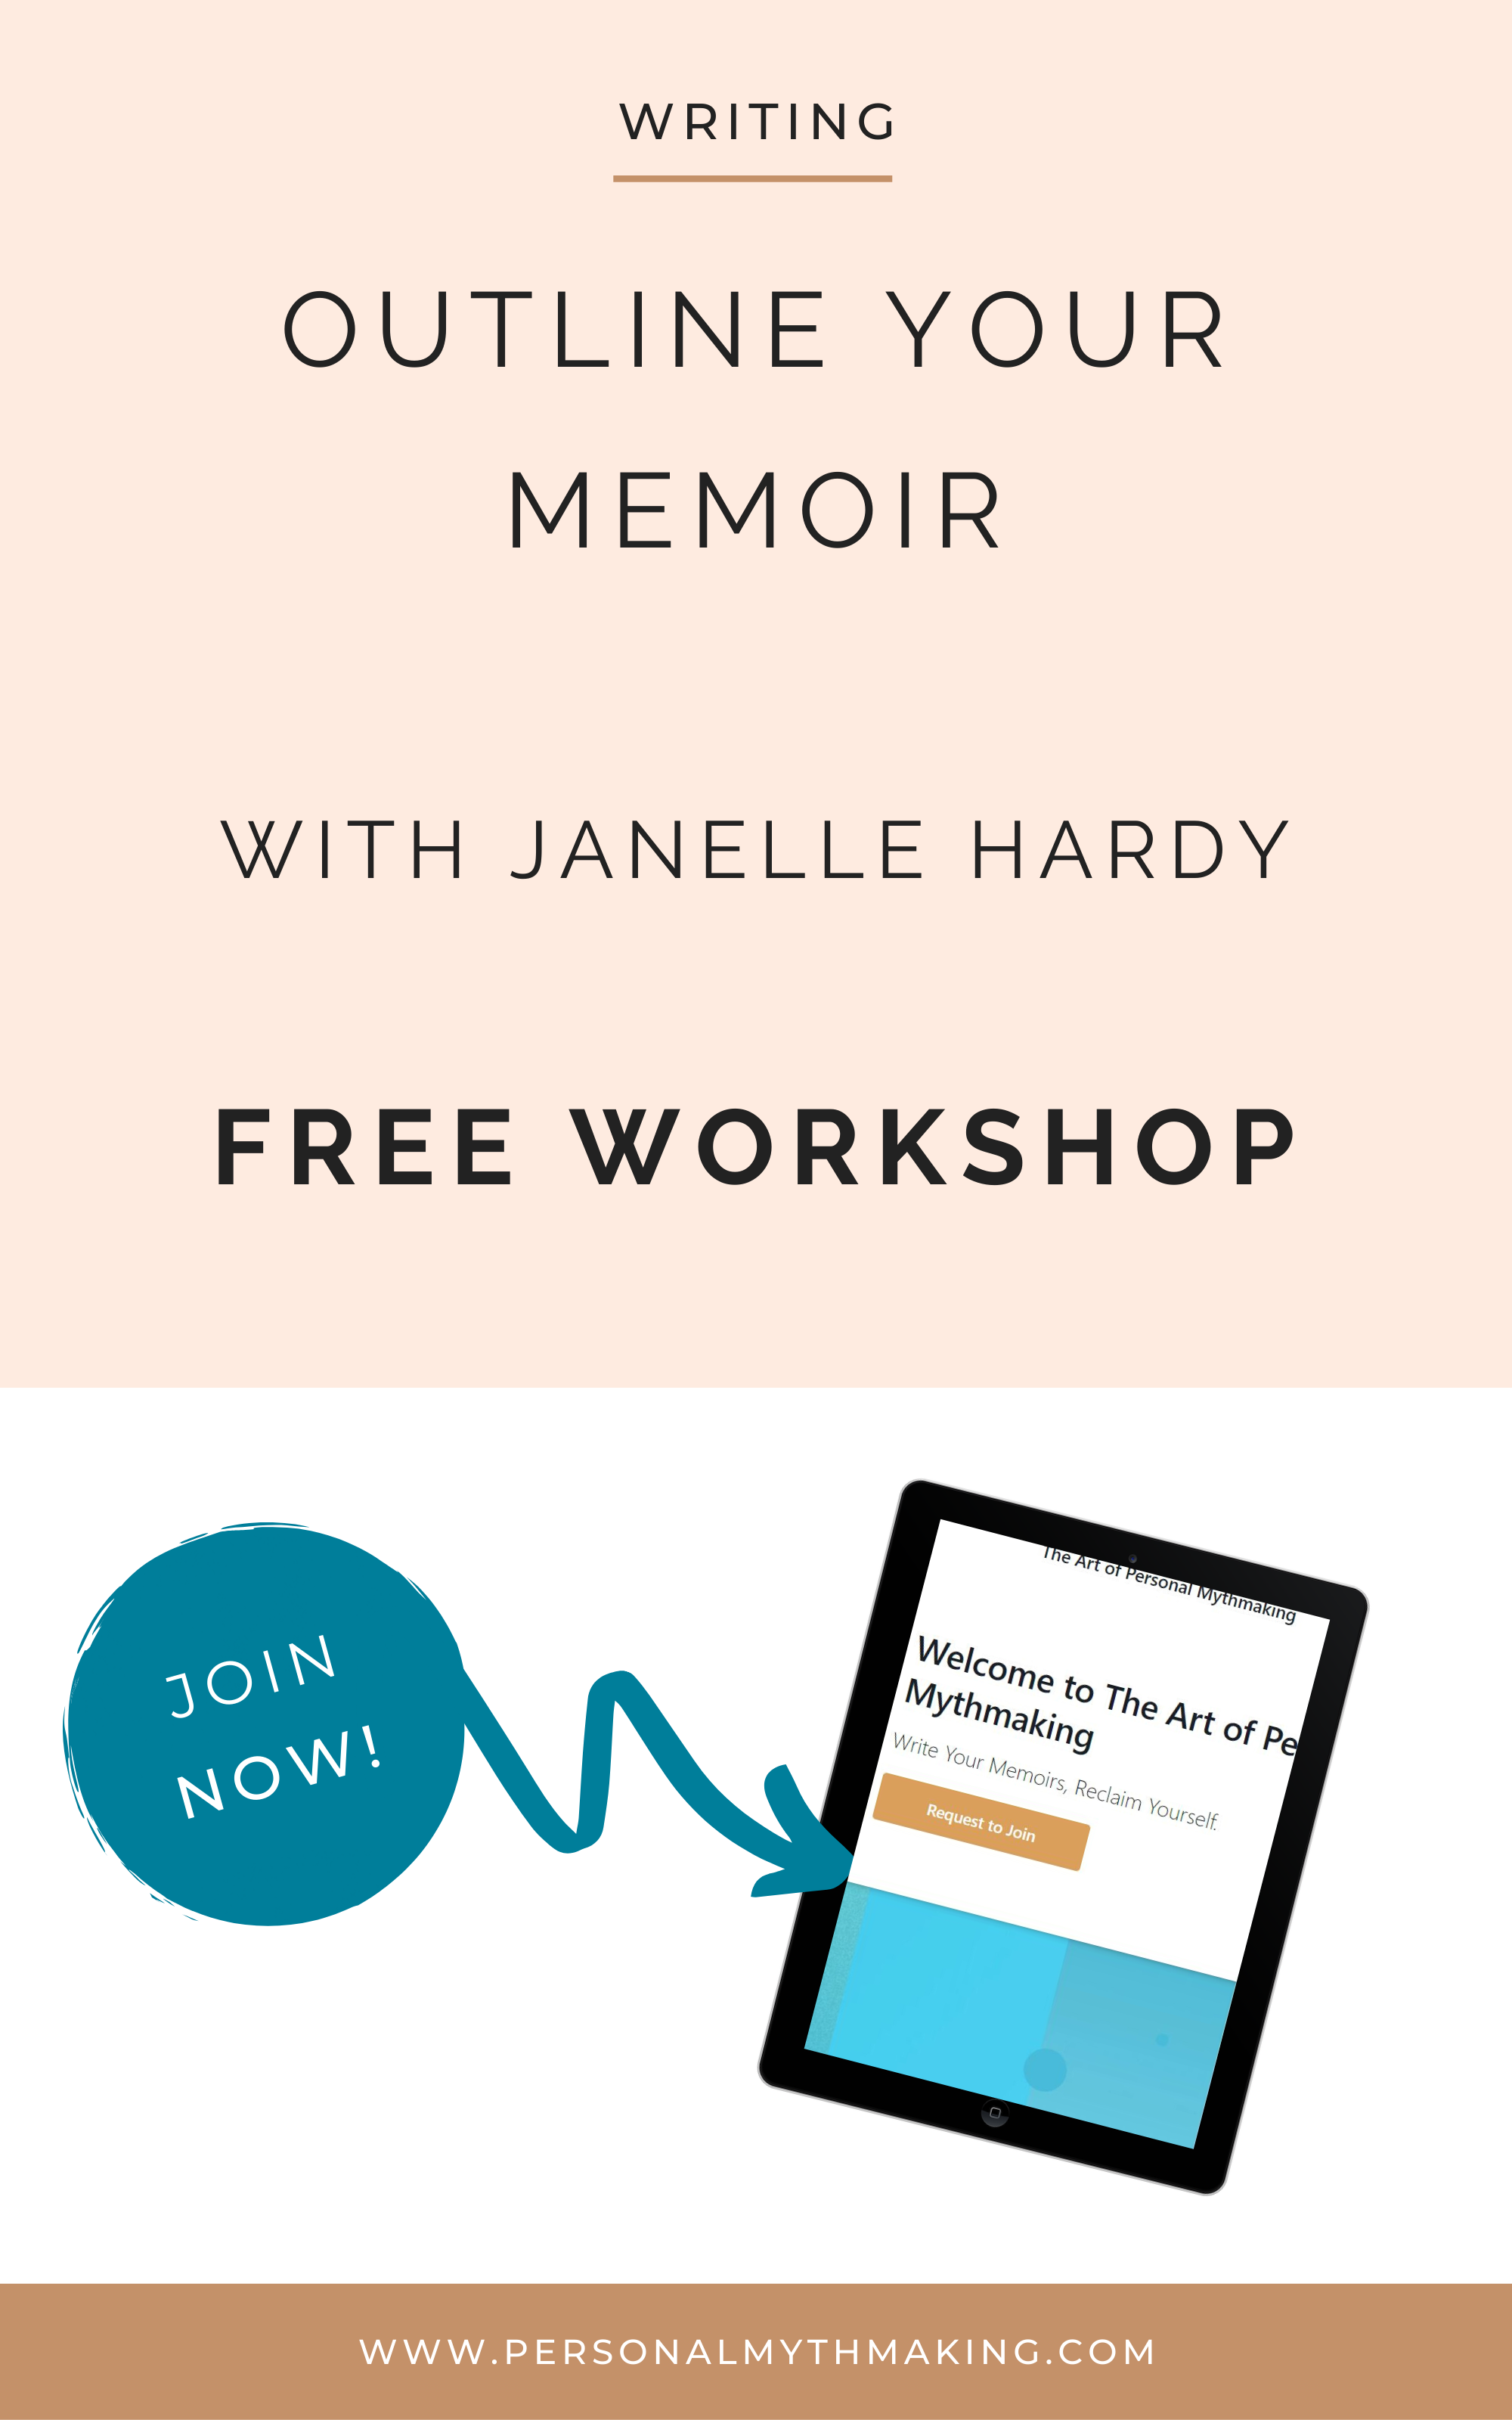 Outline your memoir free workshop  resources and tools for